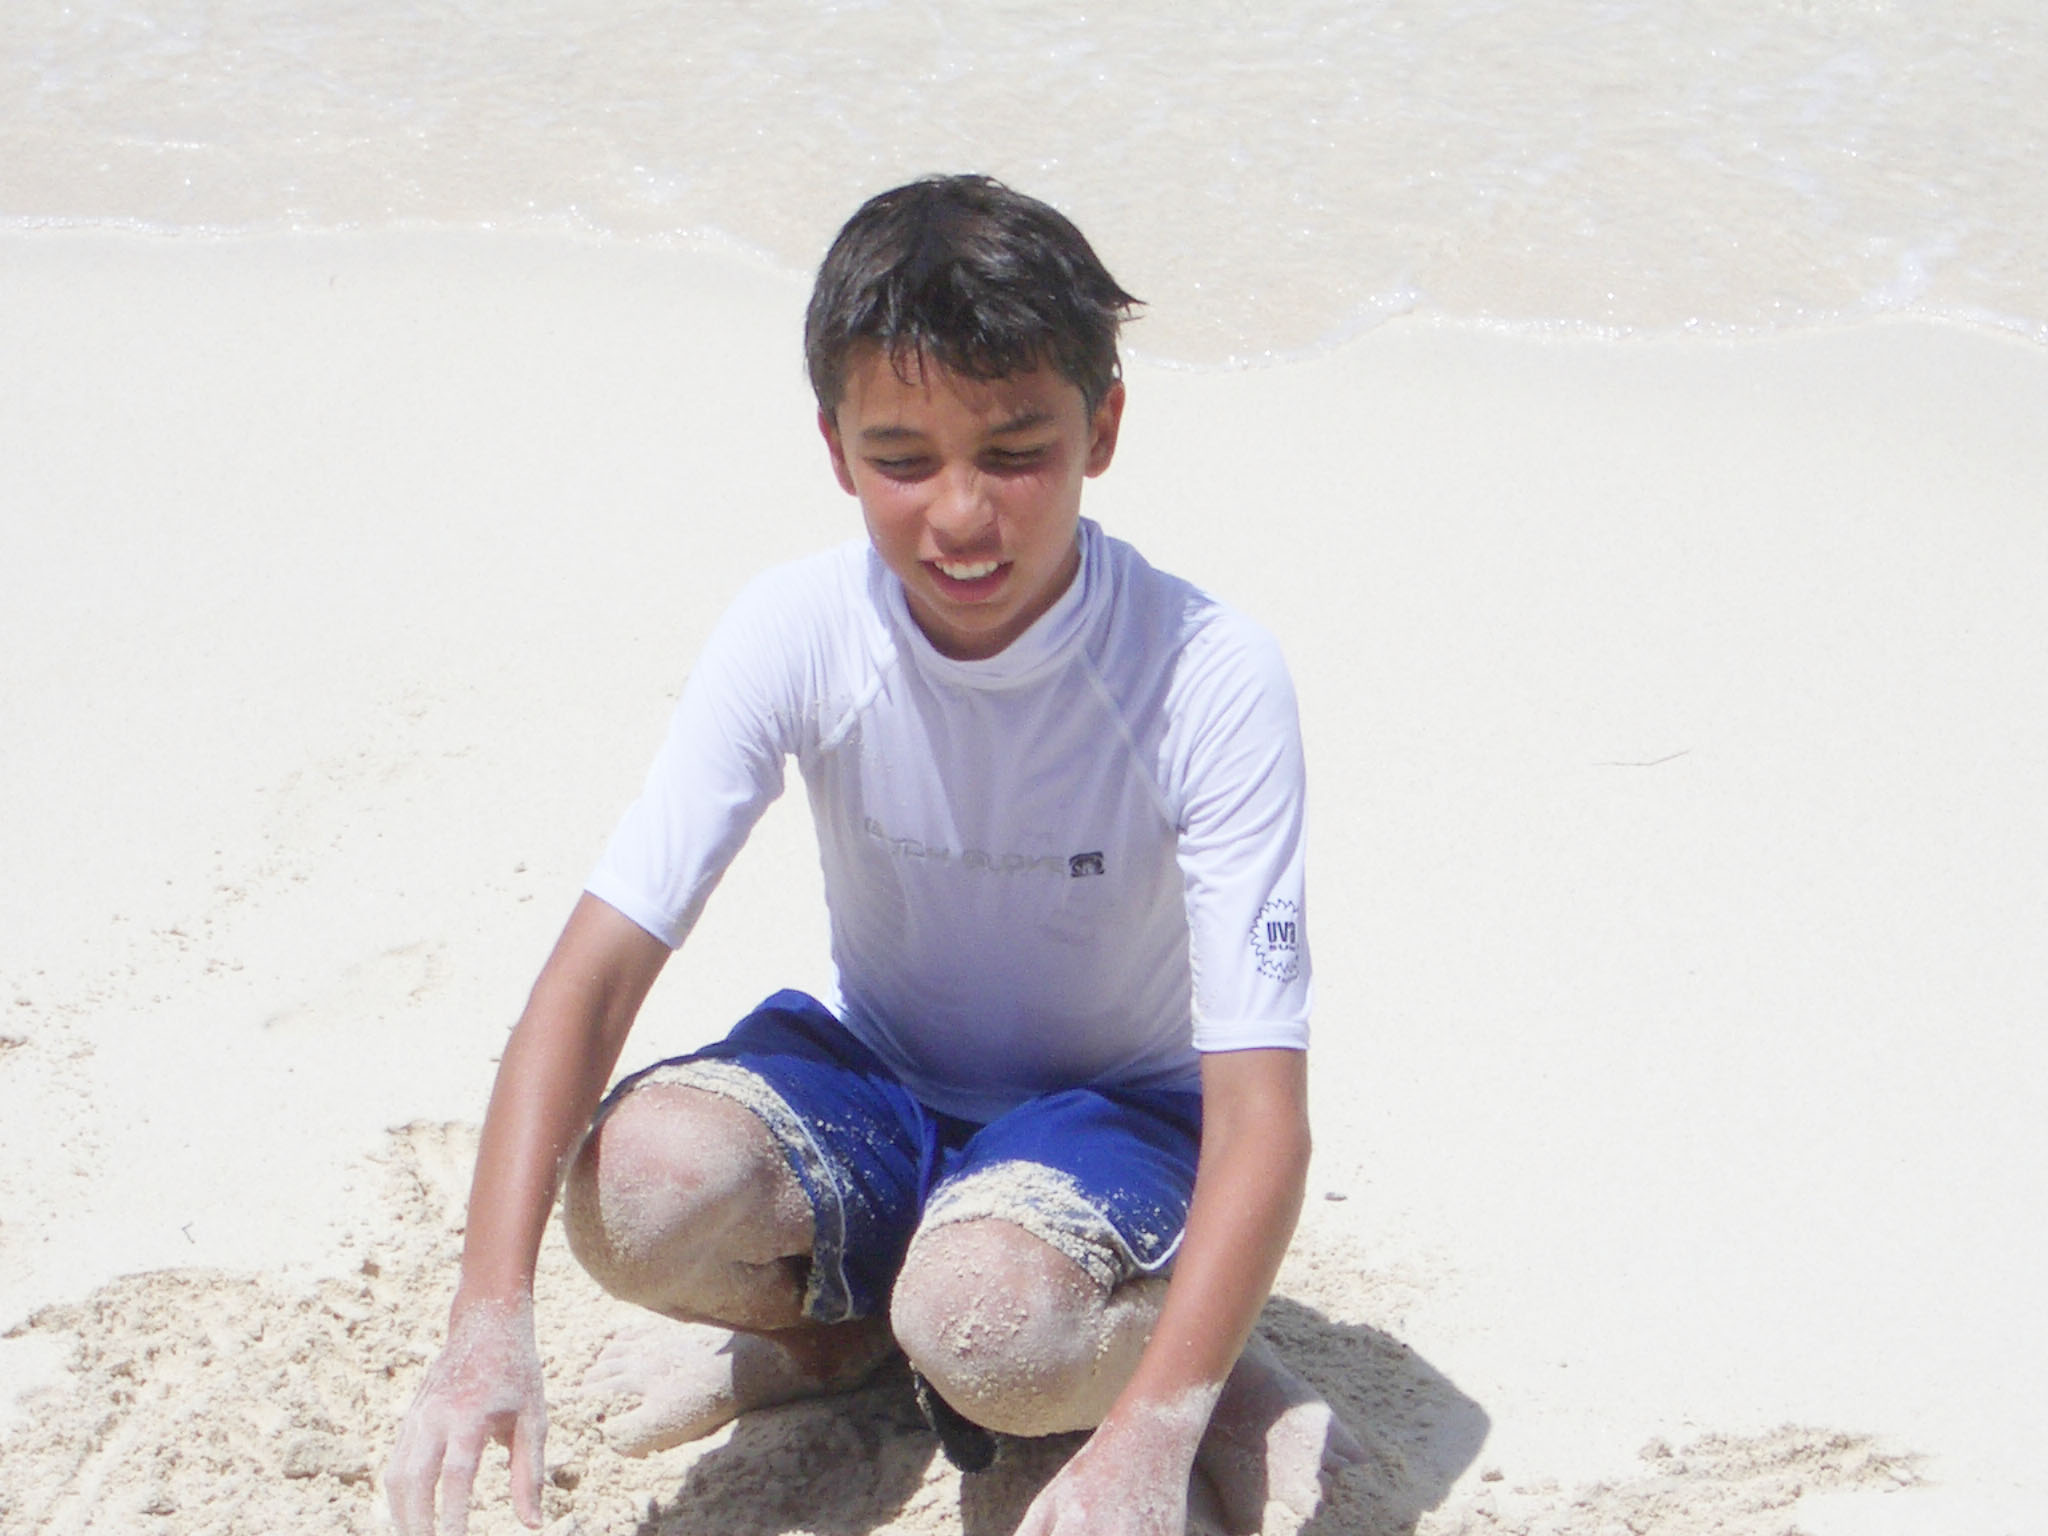 Daniel playing in sand.jpg